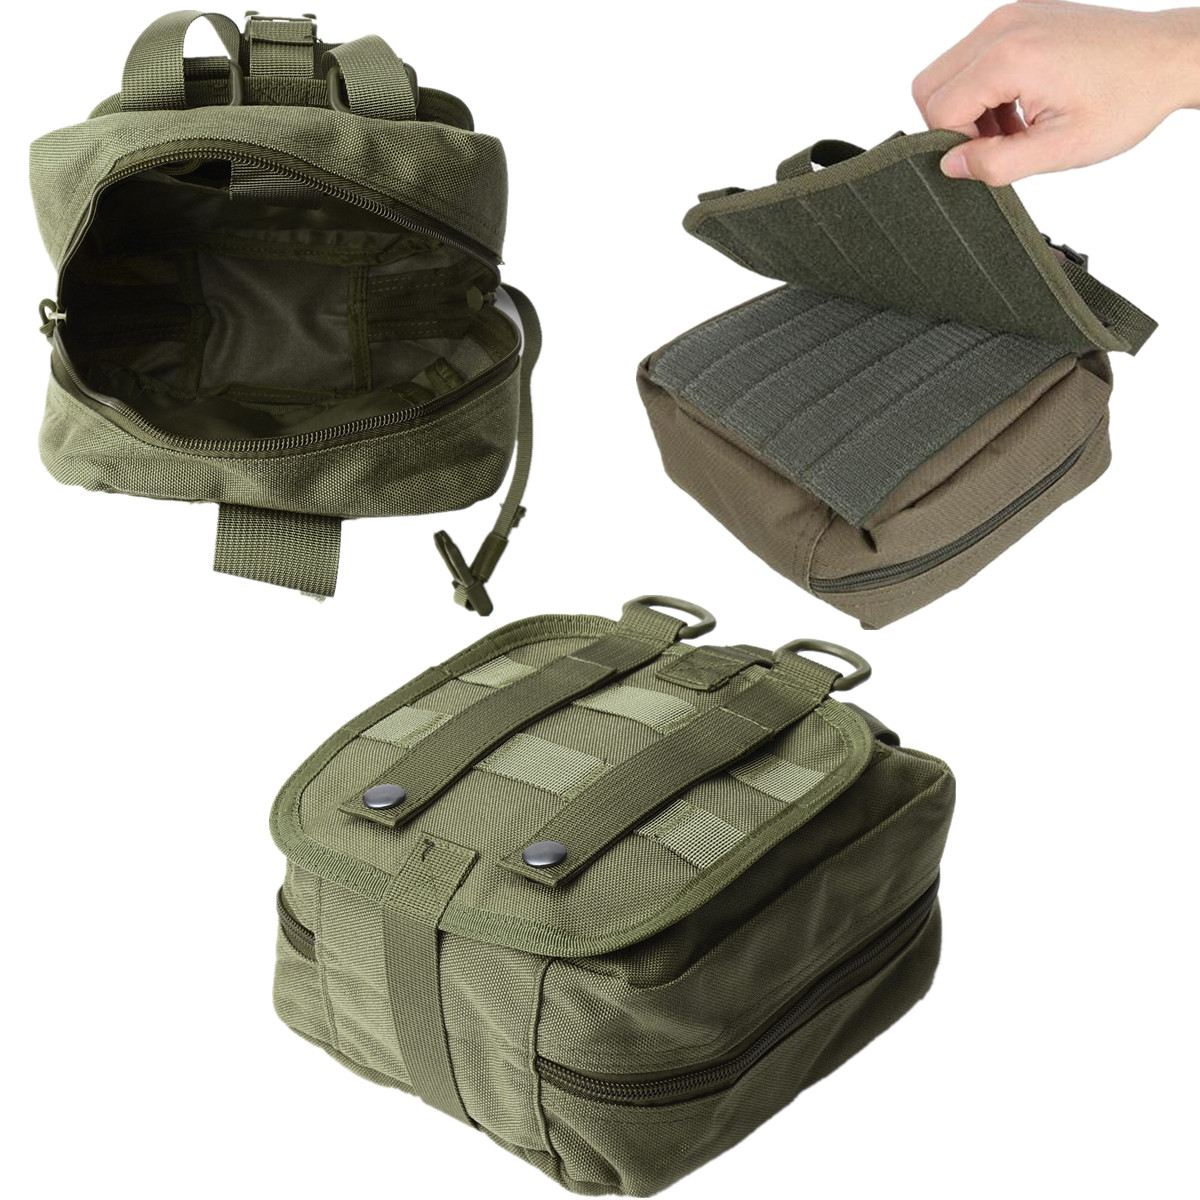 NEW Empty Bag Tactical Medical First Aid Utility Pouch Emergency Bag For Vest & Belt Treatment Pack Outdoor outdoor tactical emergency medical first aid pouch bags survival pack rescue kit empty bag